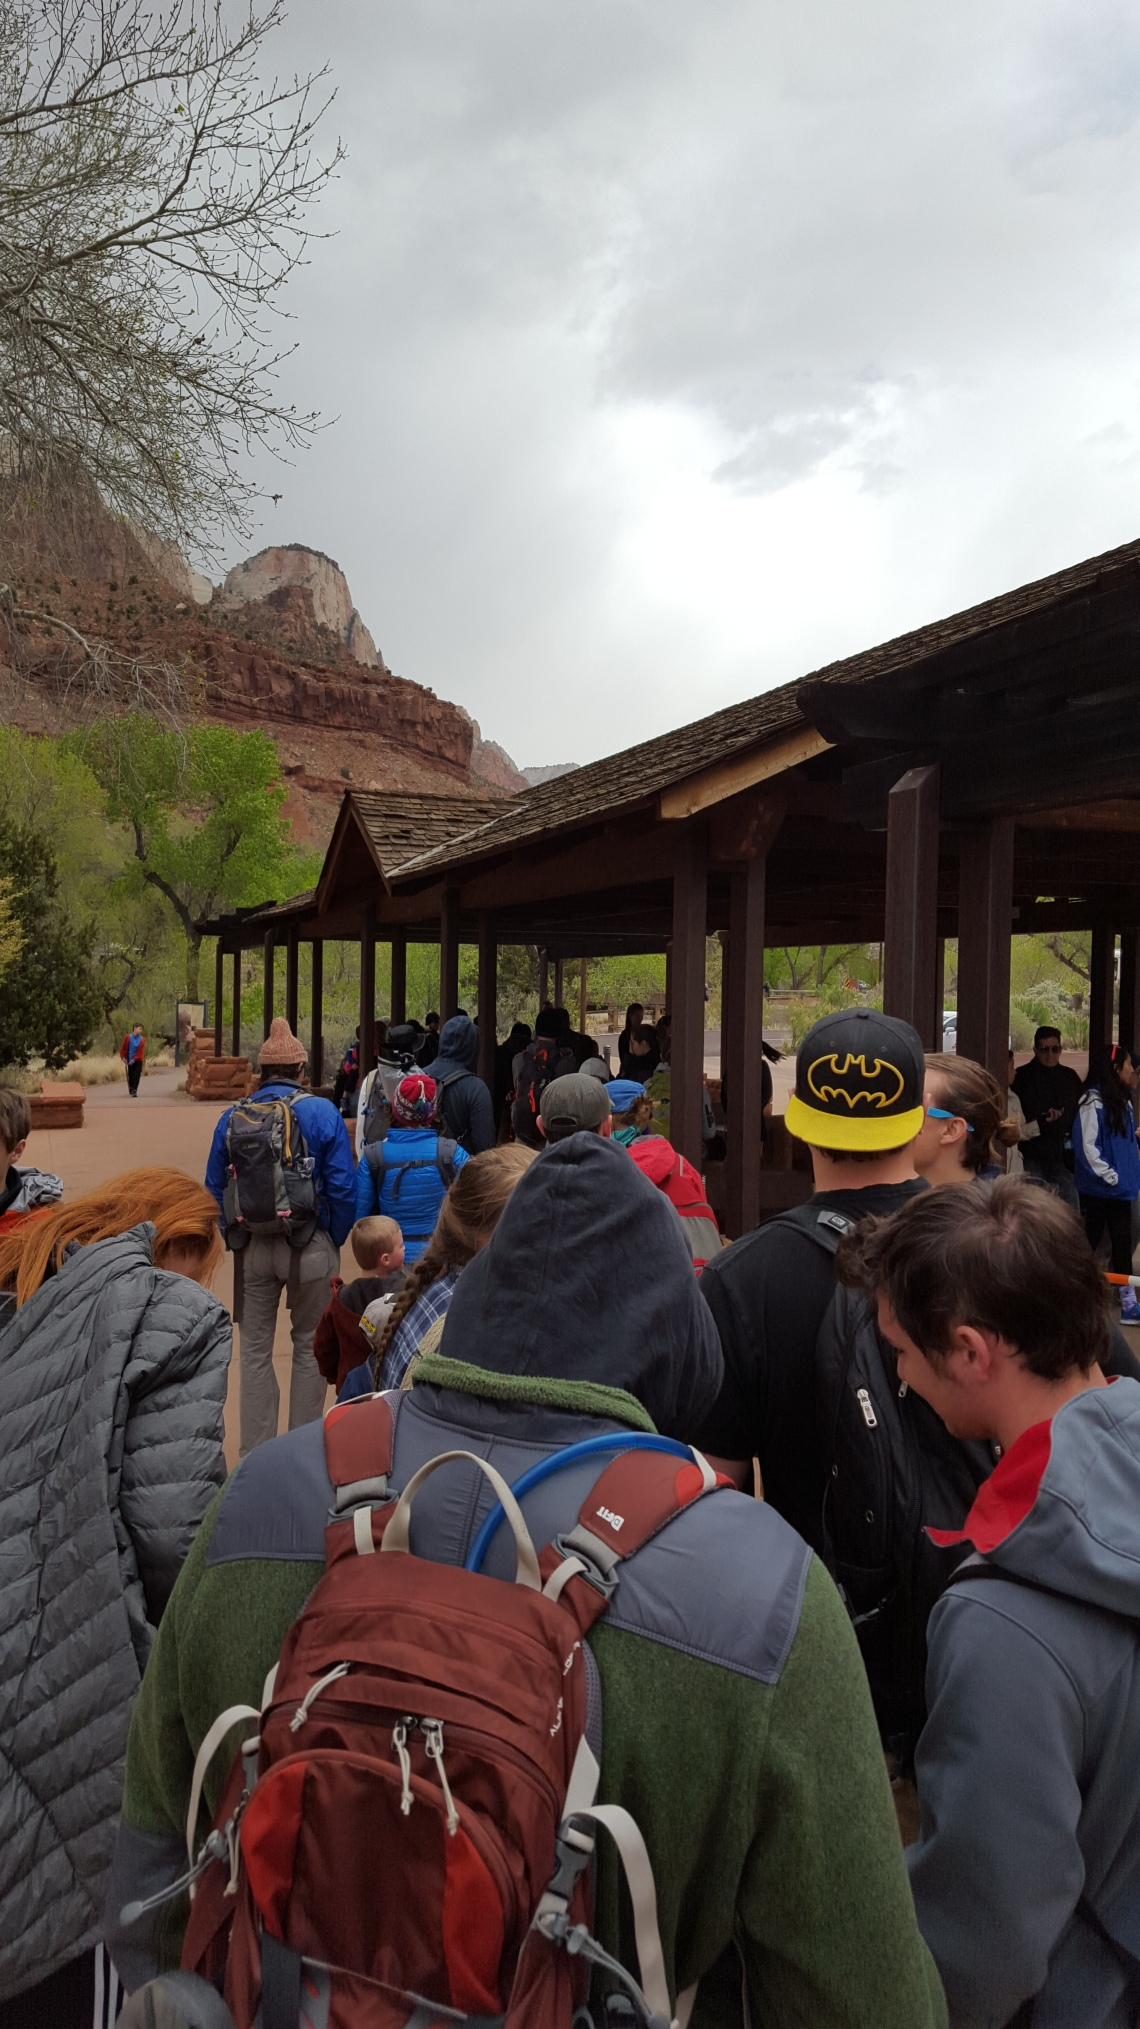 Springville Zion National Park 22.03.16Wildcat Trail Zion National Park 21.03.1620160322_122156